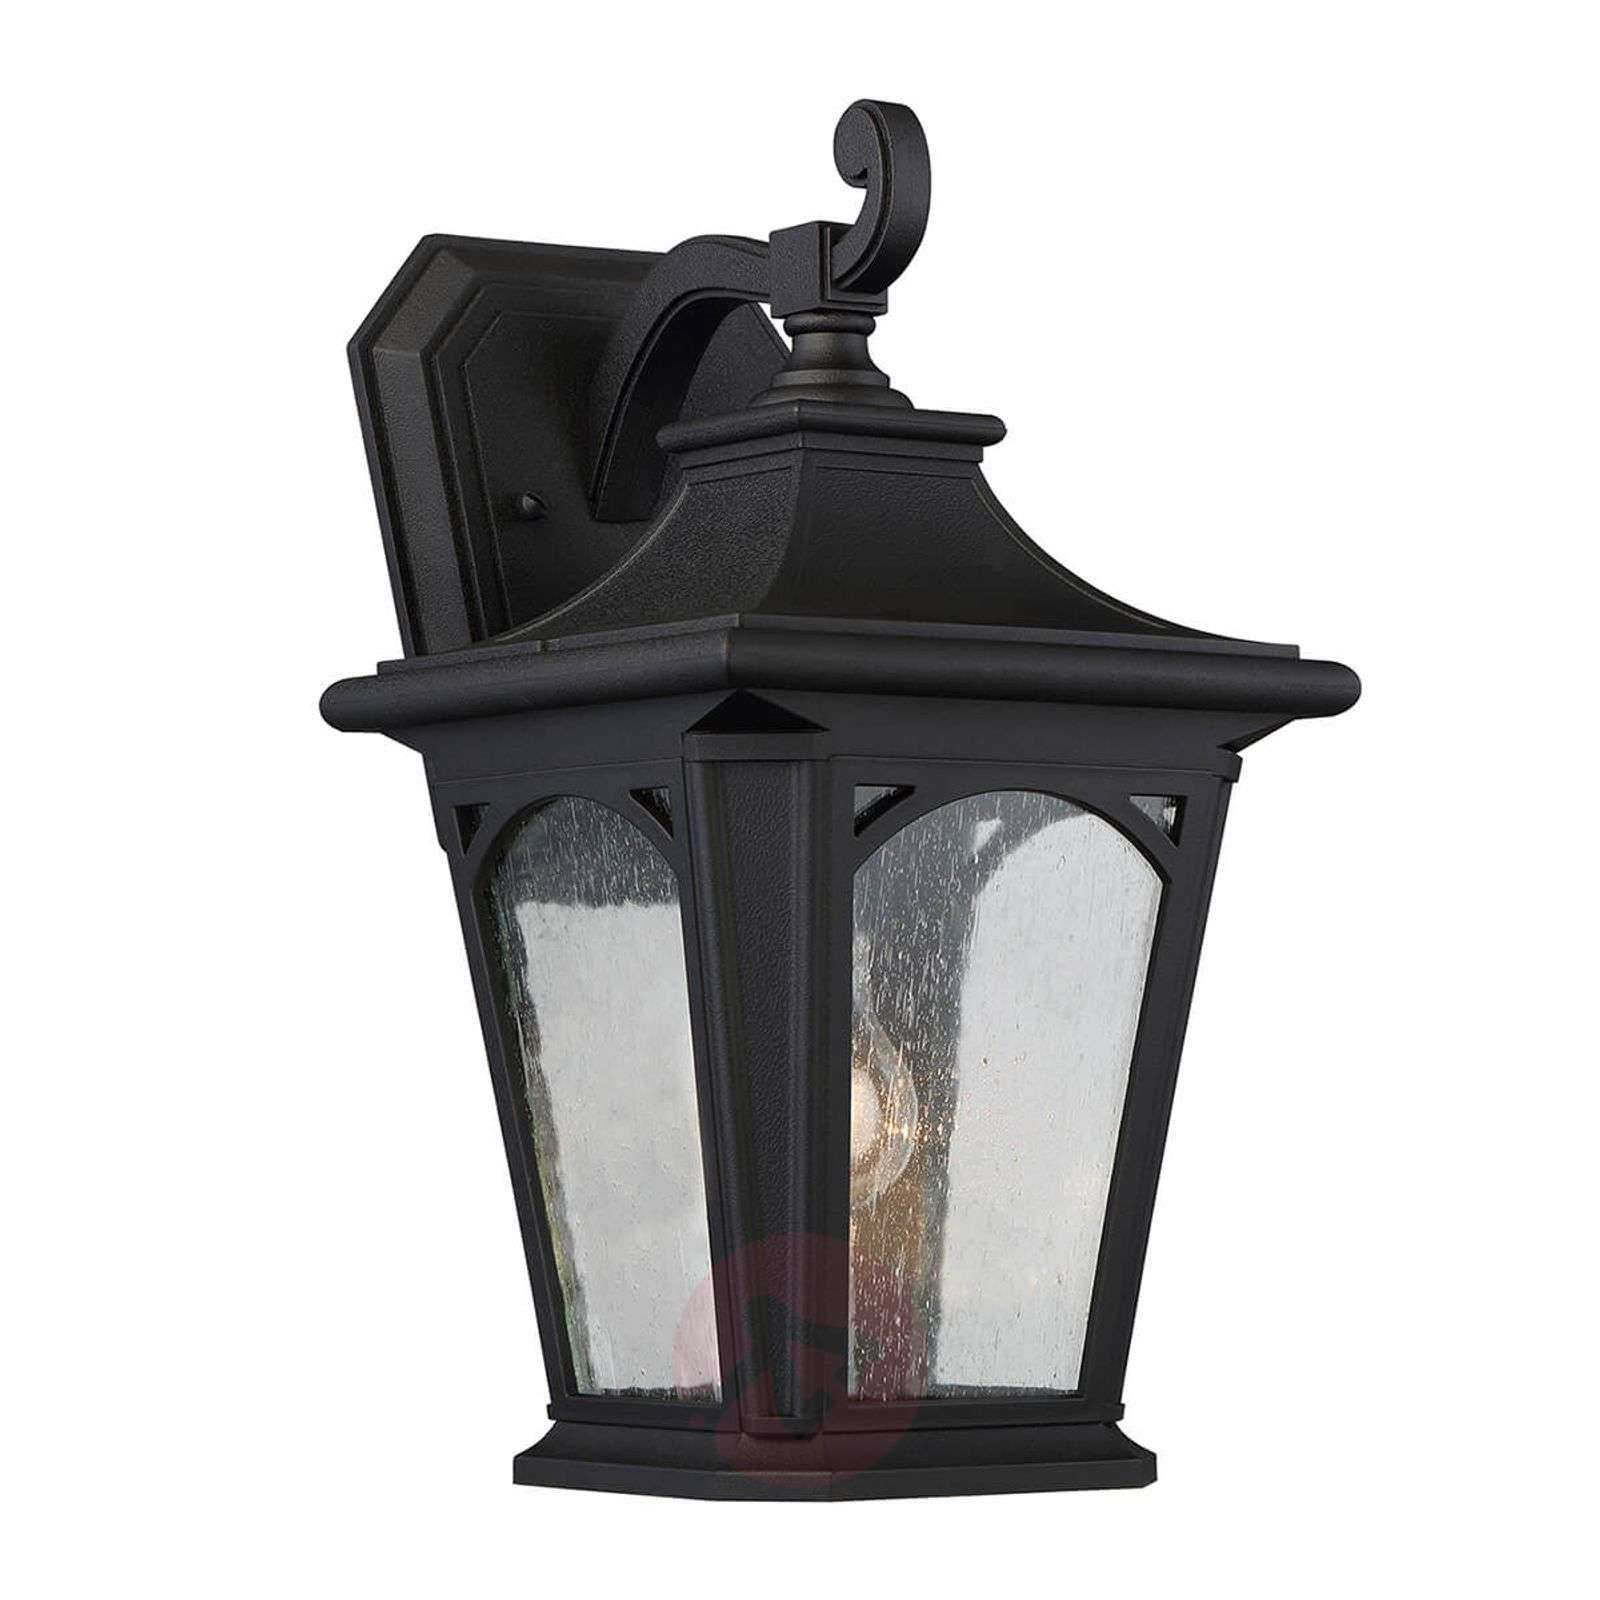 Bedford medium wall light for the outdoors-3048829-01